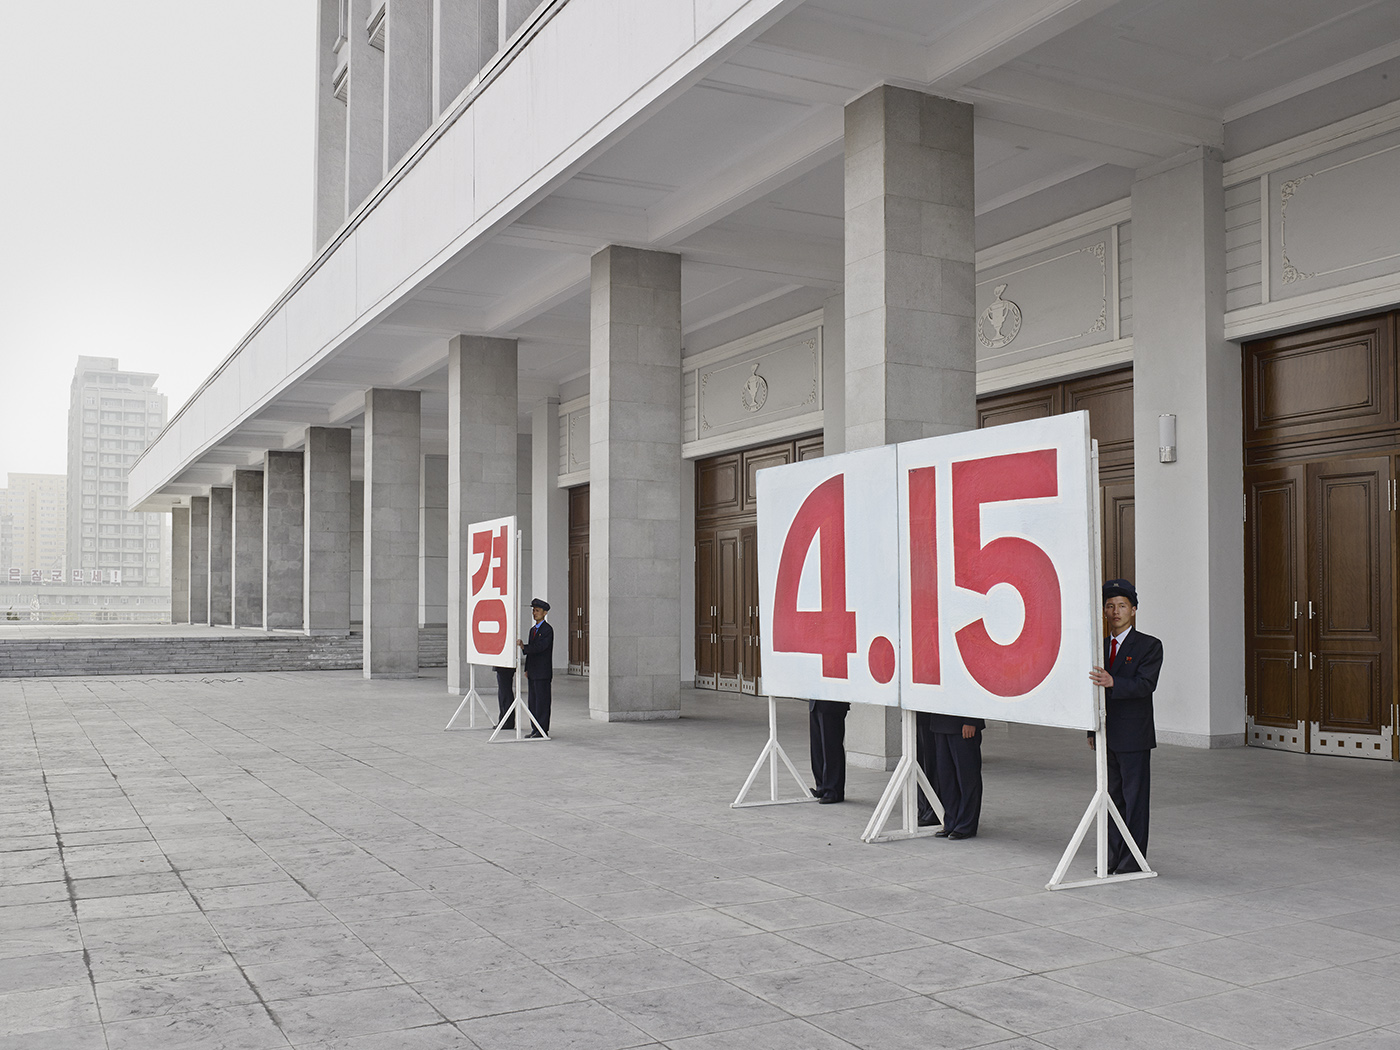 Sings display the date of Kim Il sung's birthday, which is April 15. That date is now a national holiday in North Korea